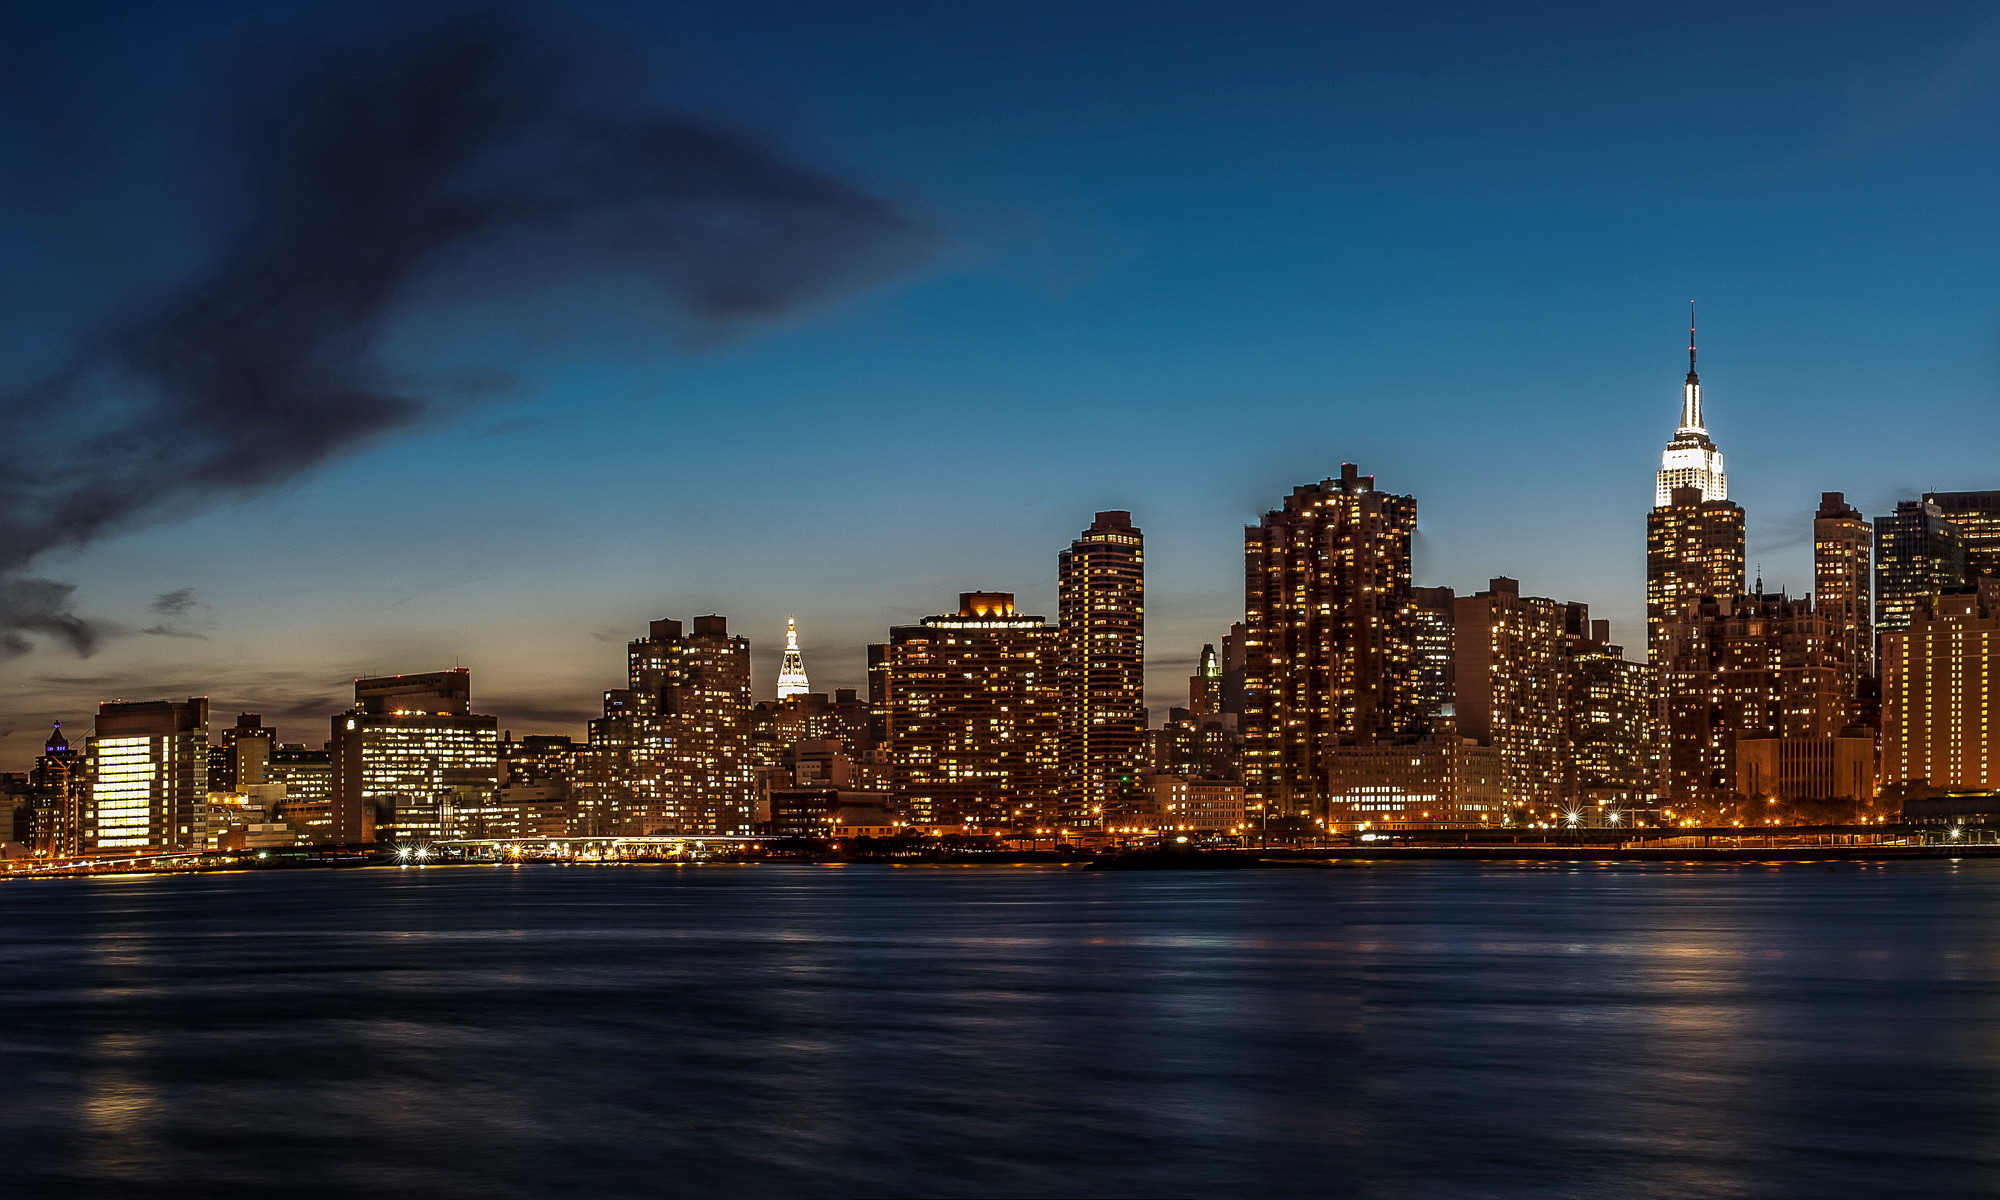 Picture New York City USA Sky night time Cities Clouds Night